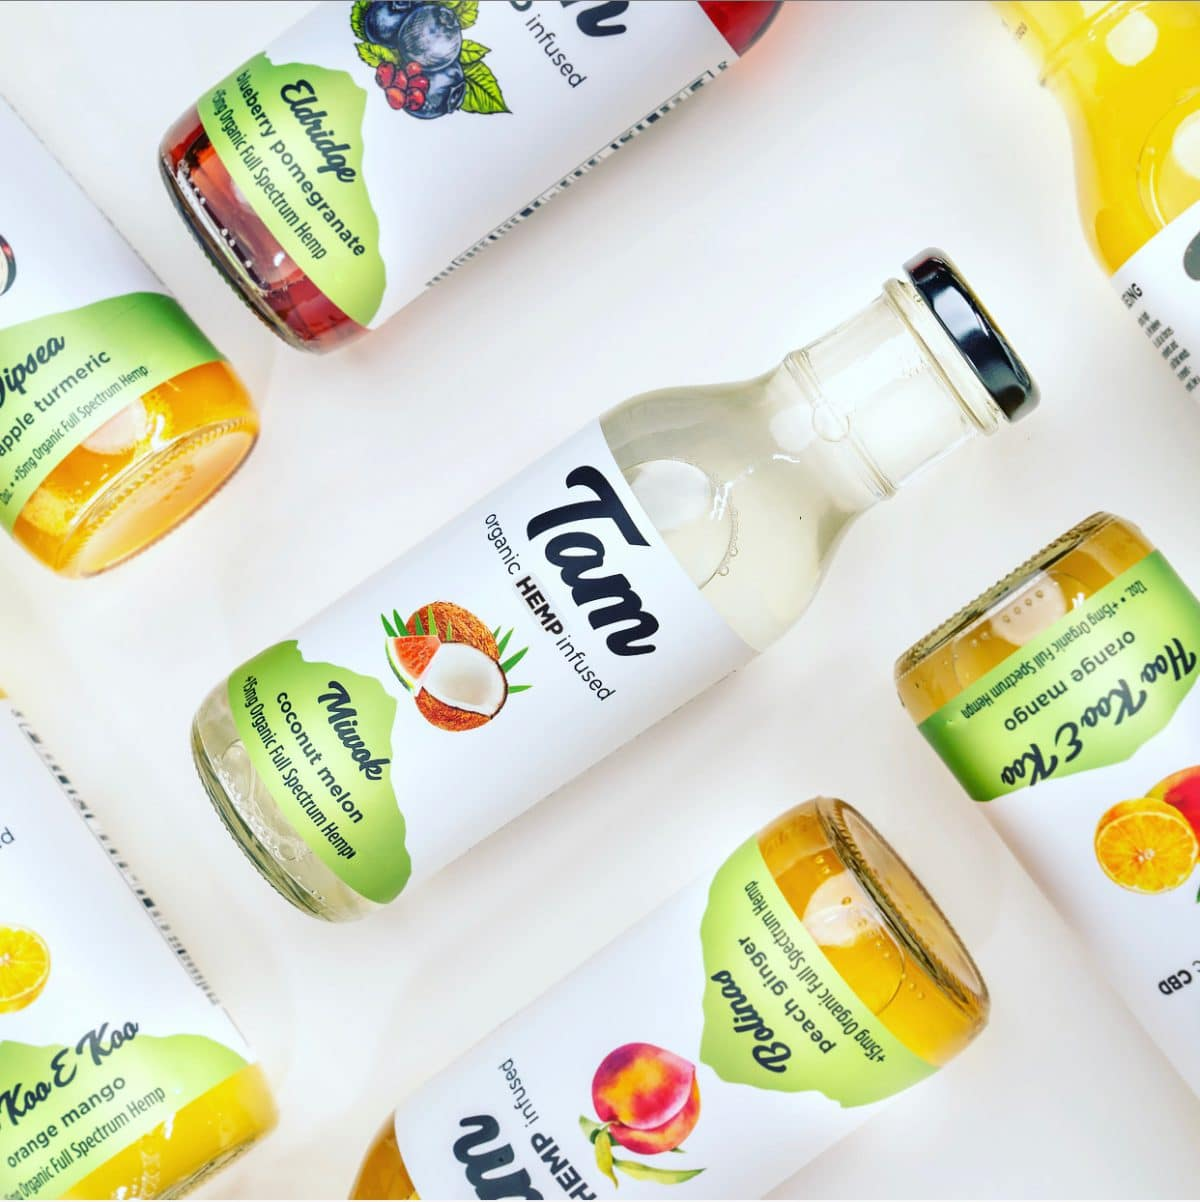 Tam Beverages Plans Summertime Market Expansion for Full Spectrum Hemp Juices - BevNET.com